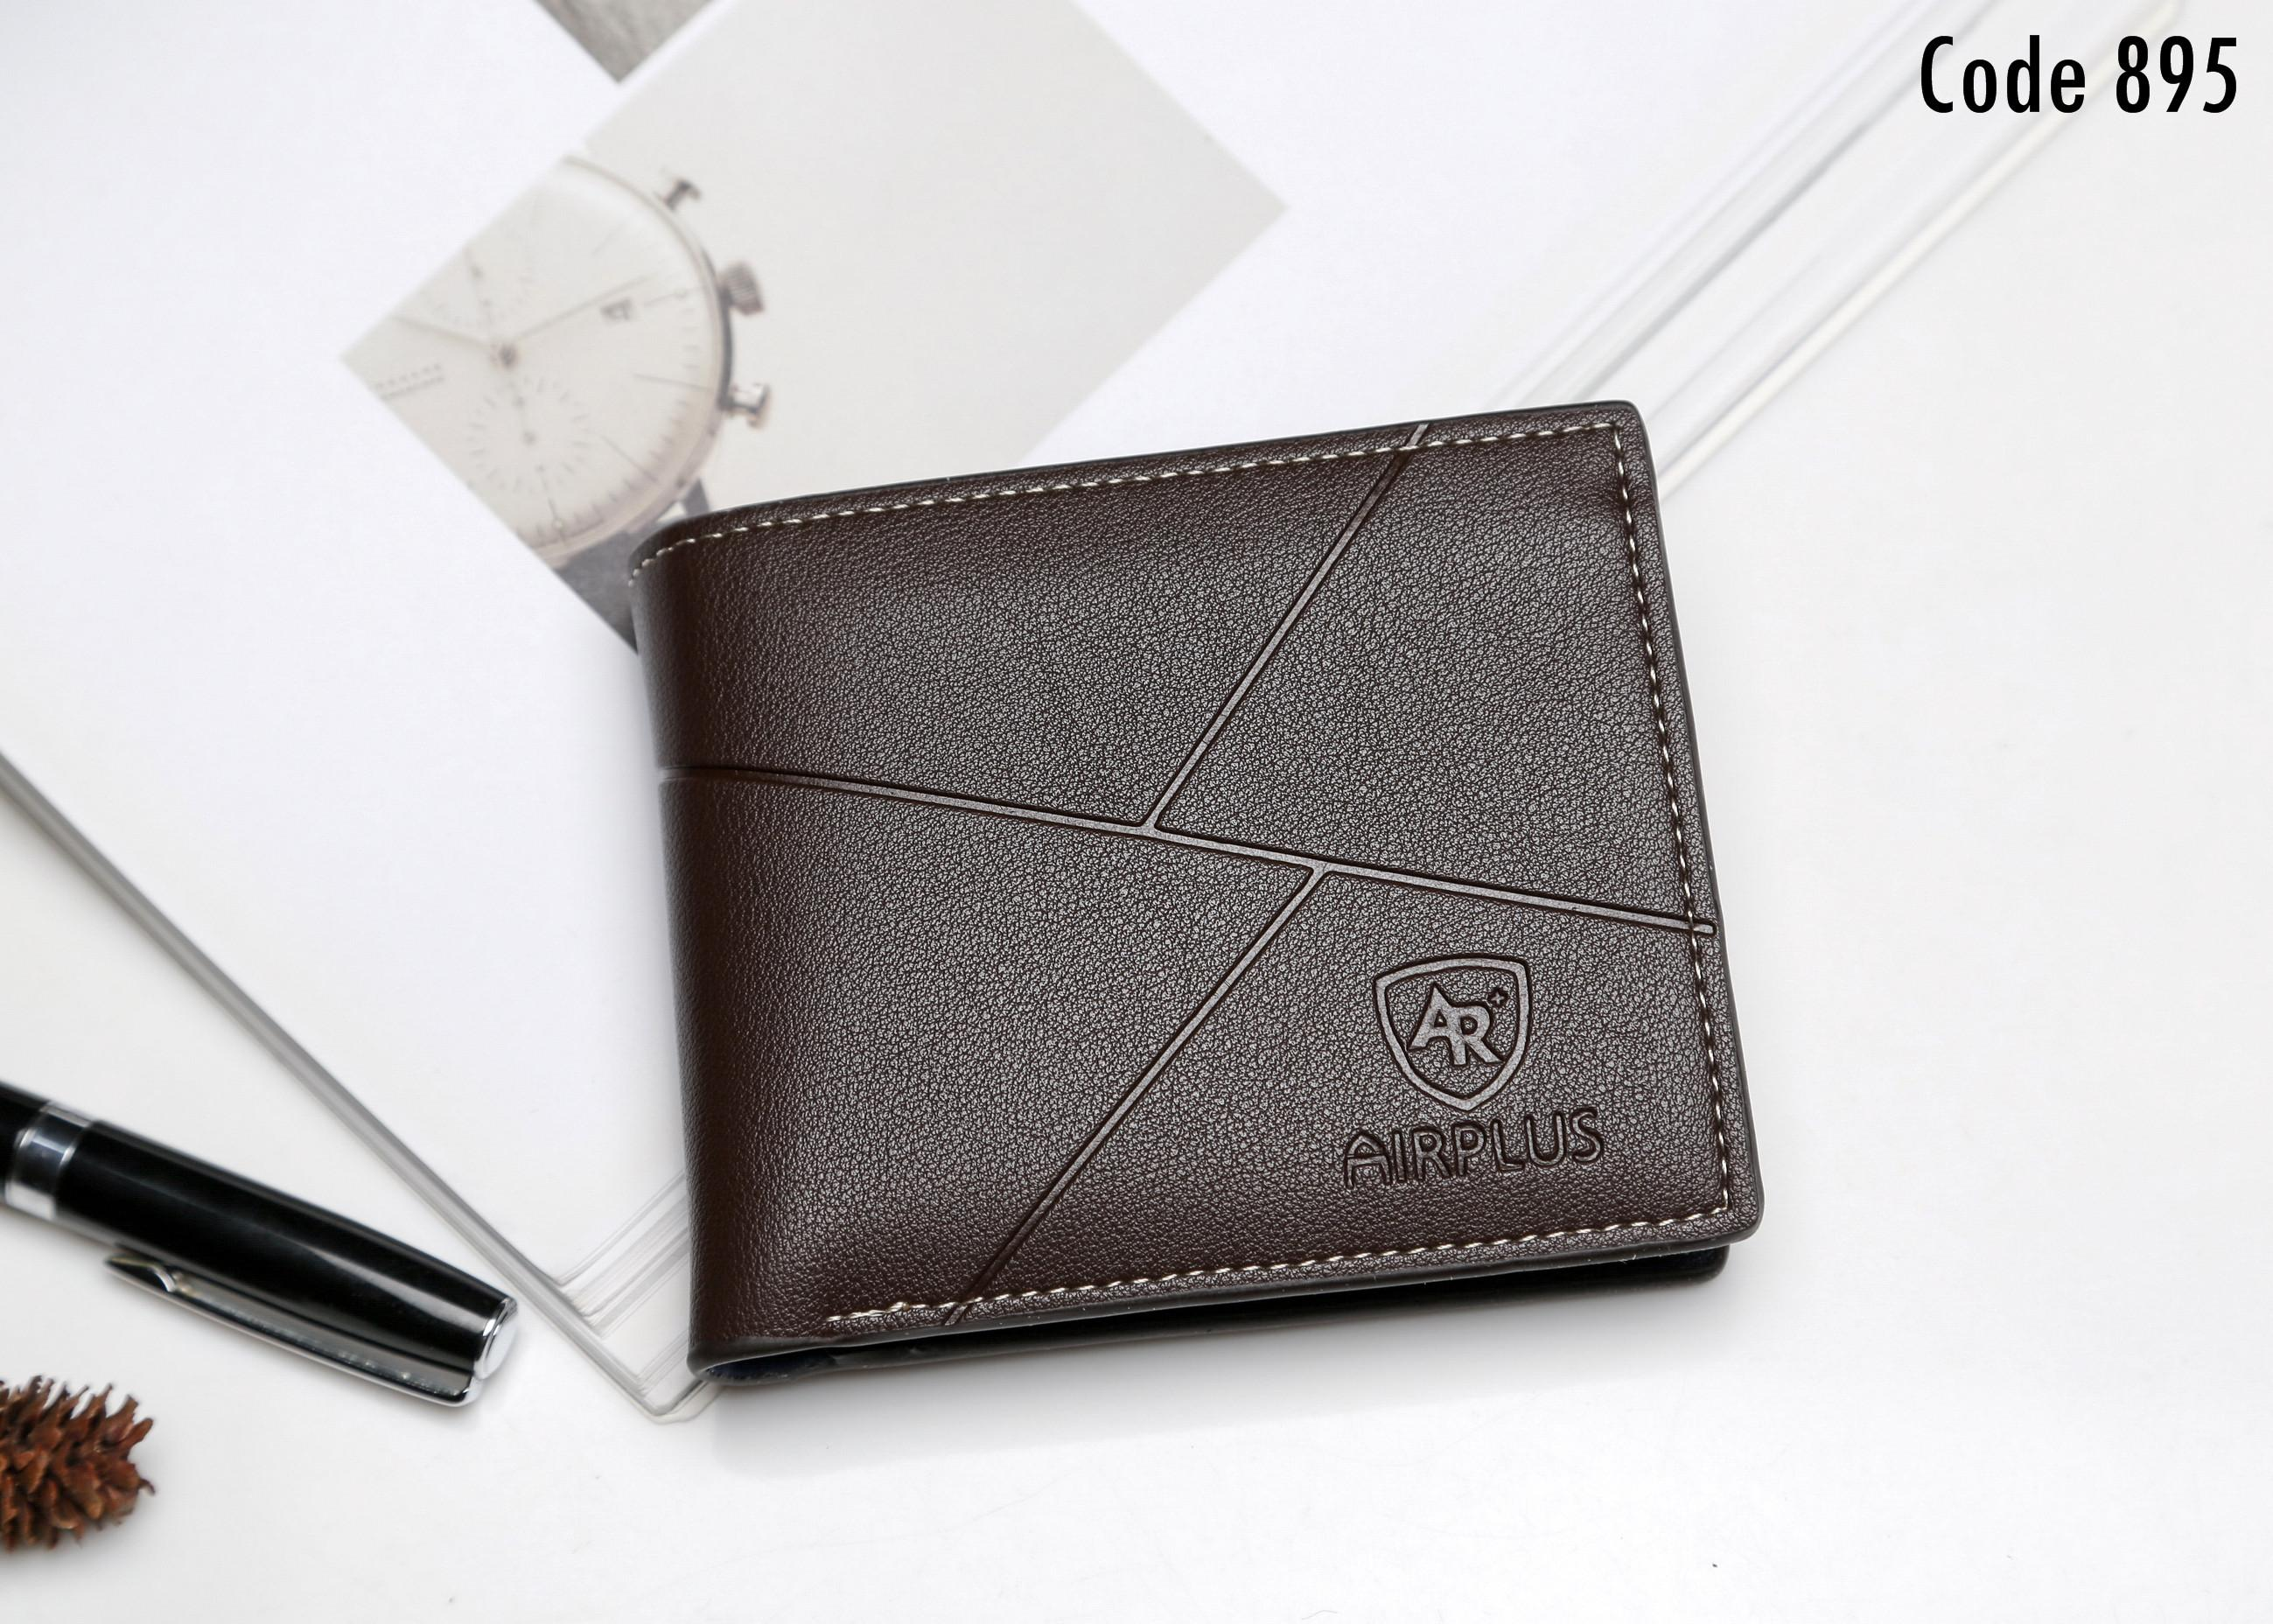 Men's Bags Luggage & Bags The Best Men Youth Short Canvas Wallet Simple Korean Wallet Casual Personality Ticket Holder Reasonable Price